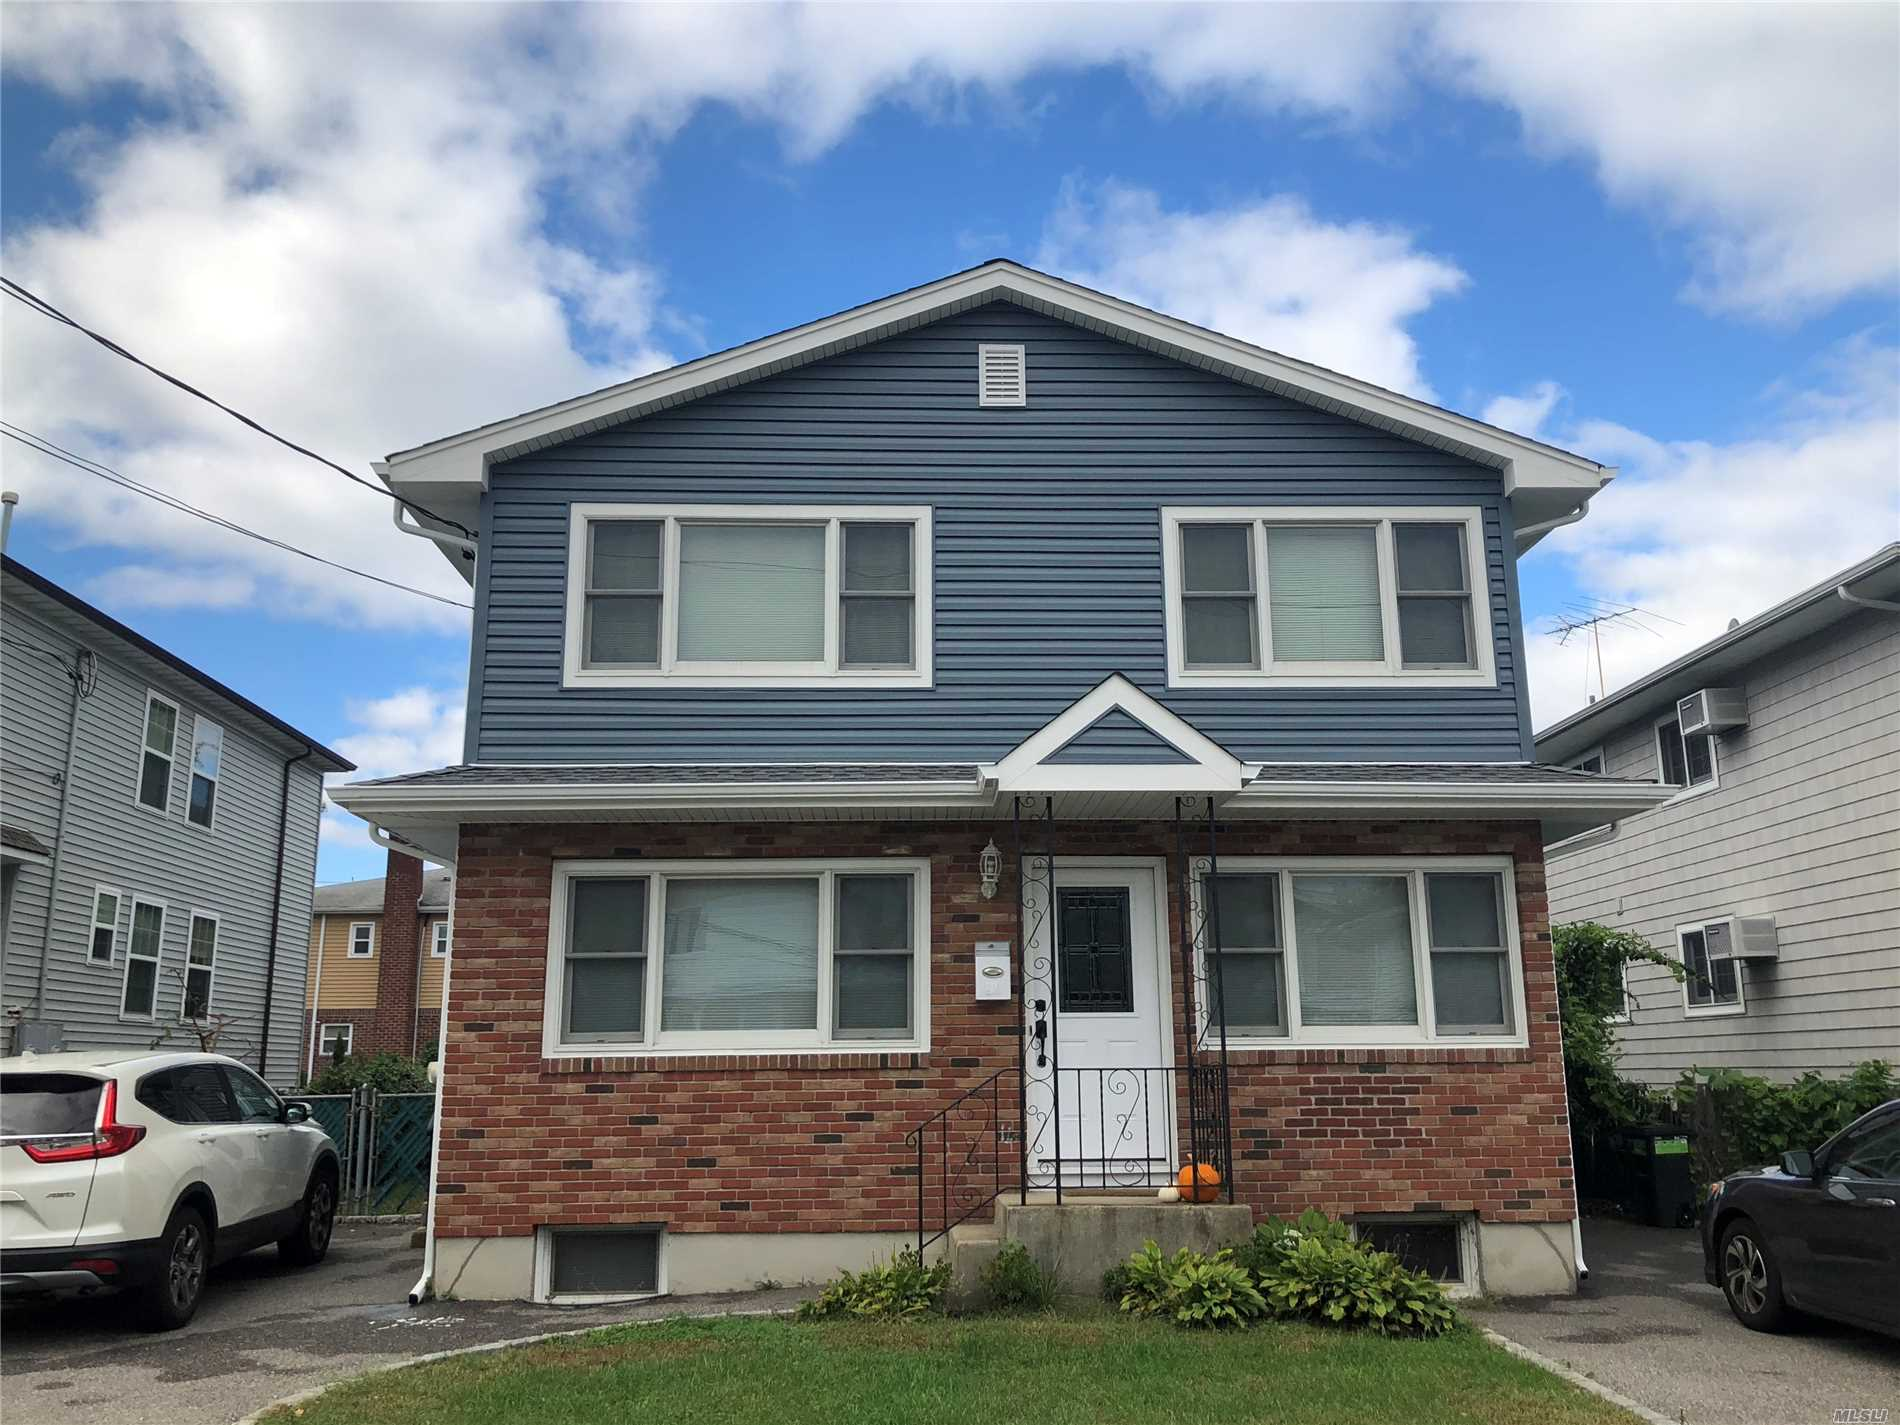 Large Recently Updated 2 Family Home. Great Investment Opportunity. Each Unit Consists Of 3 Brs, 1 Full Bath, Updated Eik, Lr/Dr. Private Laundry And Off-Street Parking. Walking Distance To Manorhaven Park, Pool & Beach.